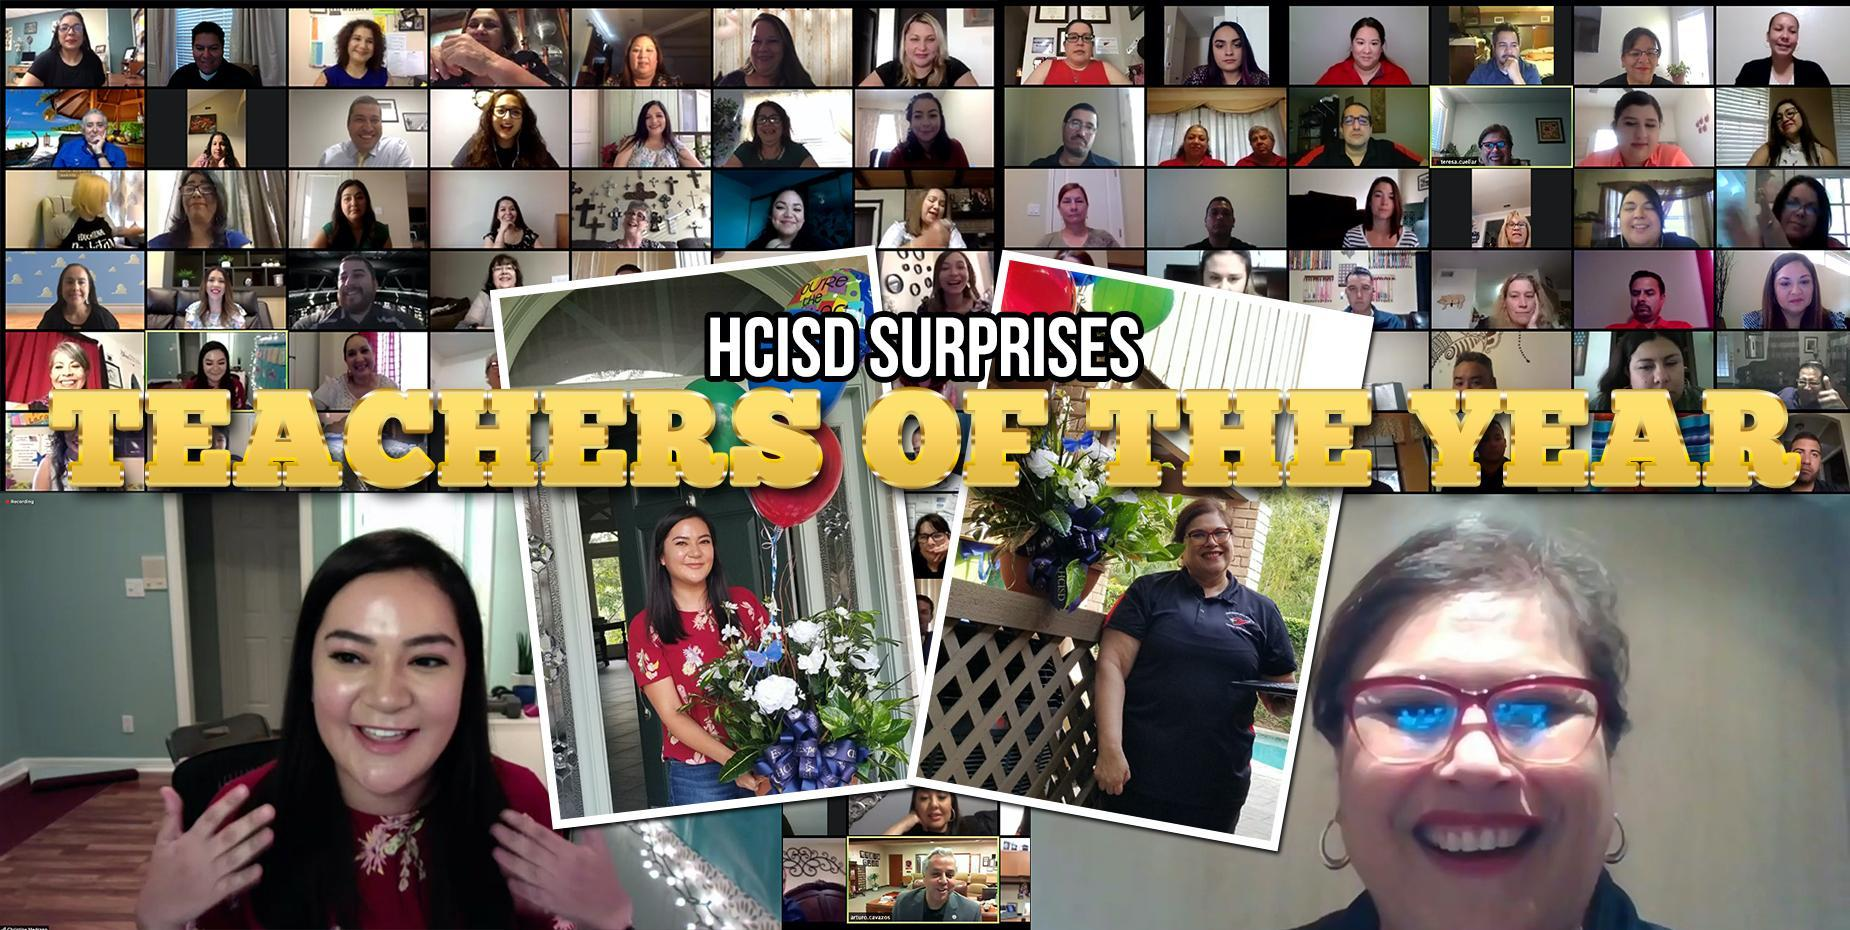 Collage of teachers for special teacher of the year announcement photo of teachers smiling